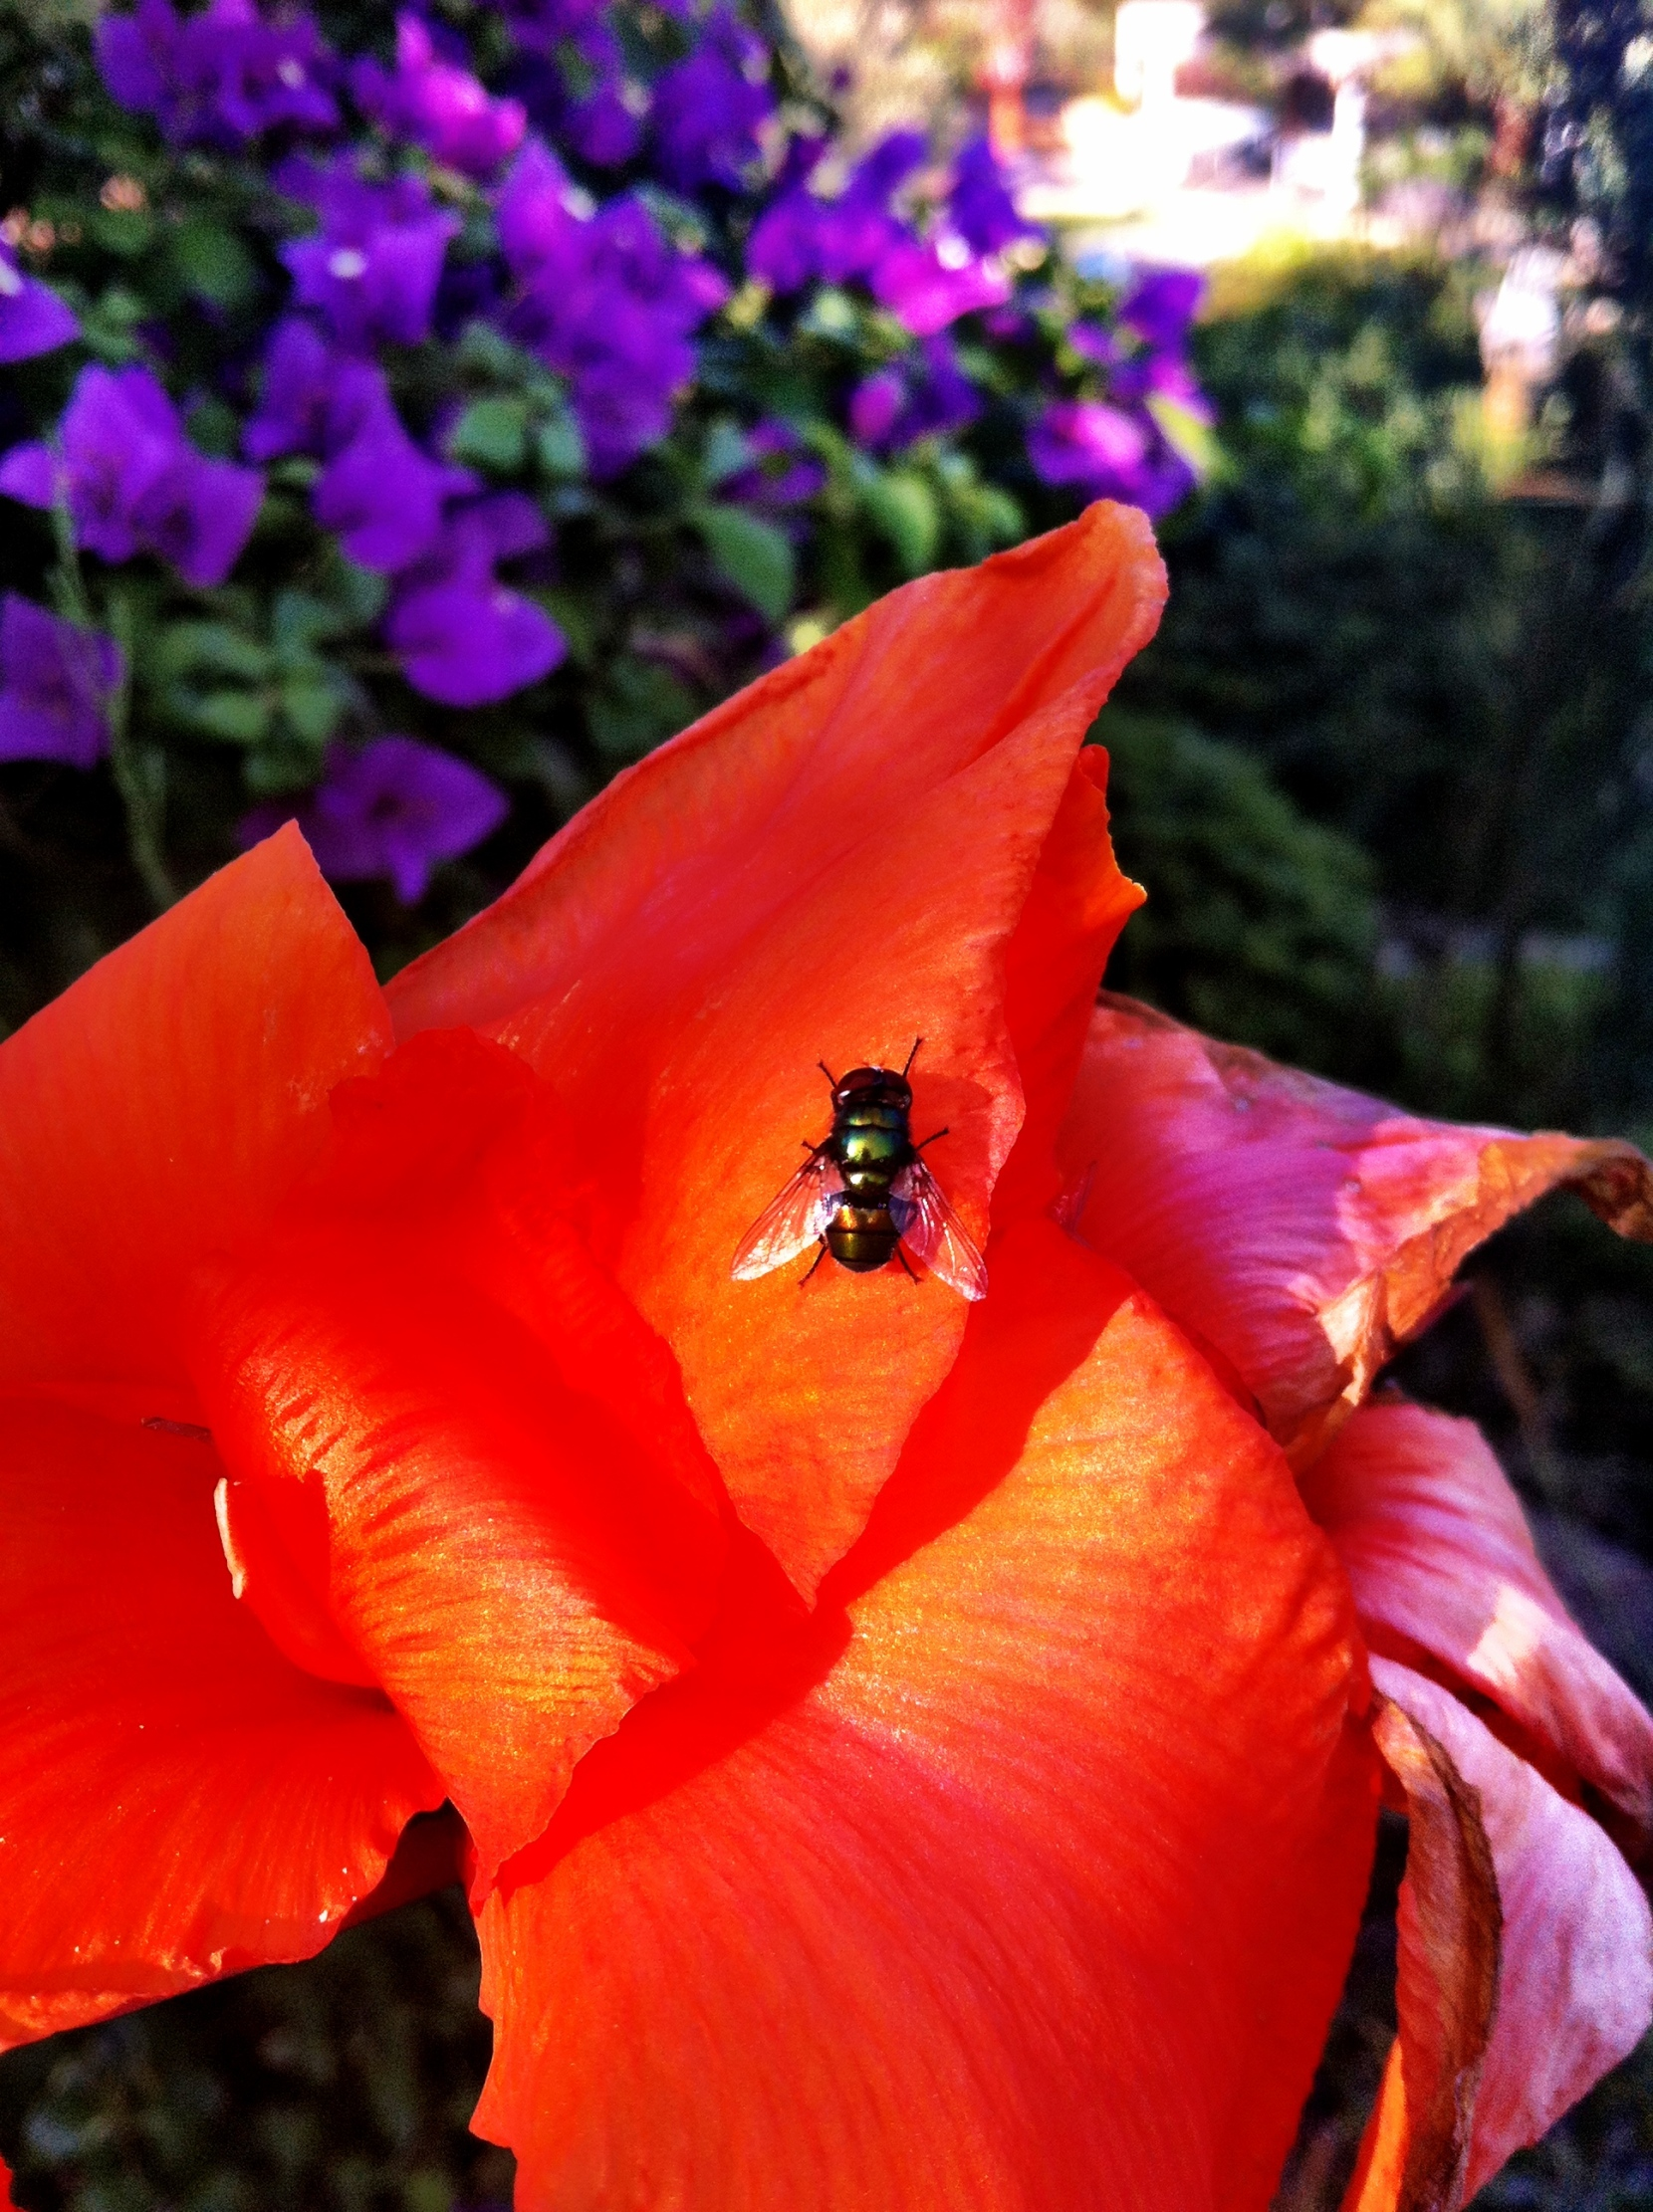 flower and the fly